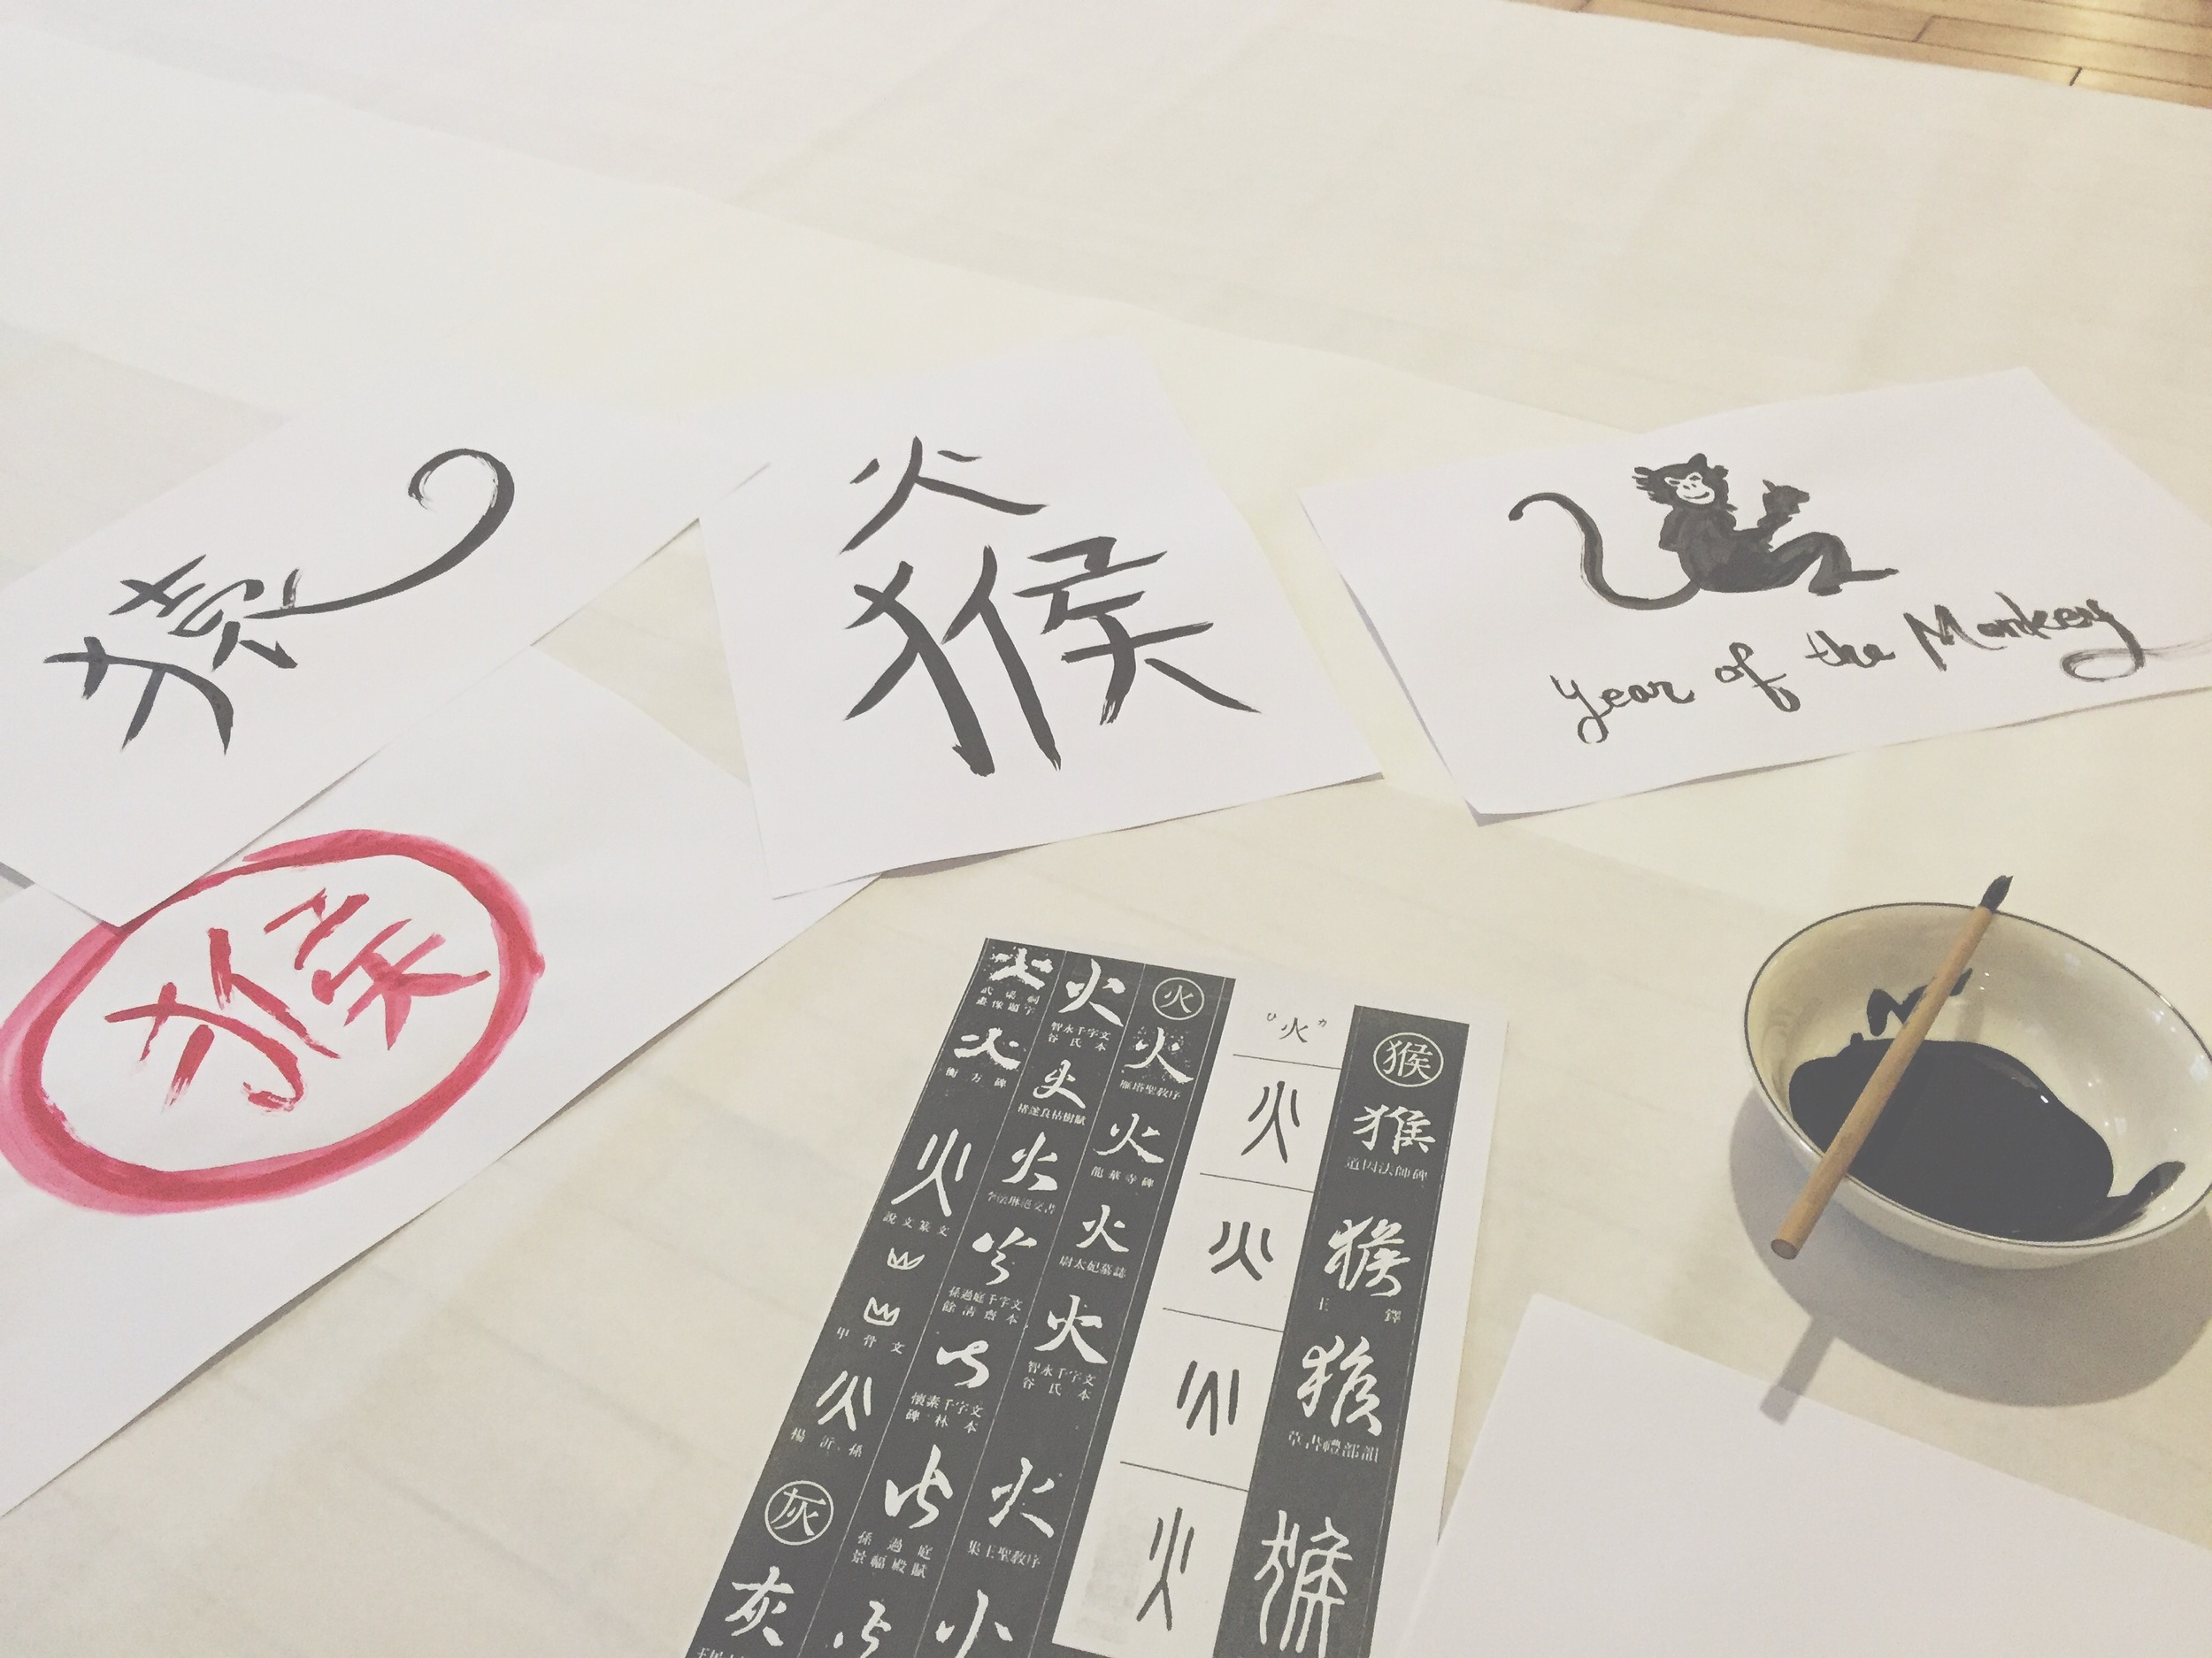 Painting  year of the monkey  art for  #shambhaladay   #monkey   #calligraphy   #firemonkey   #sumi